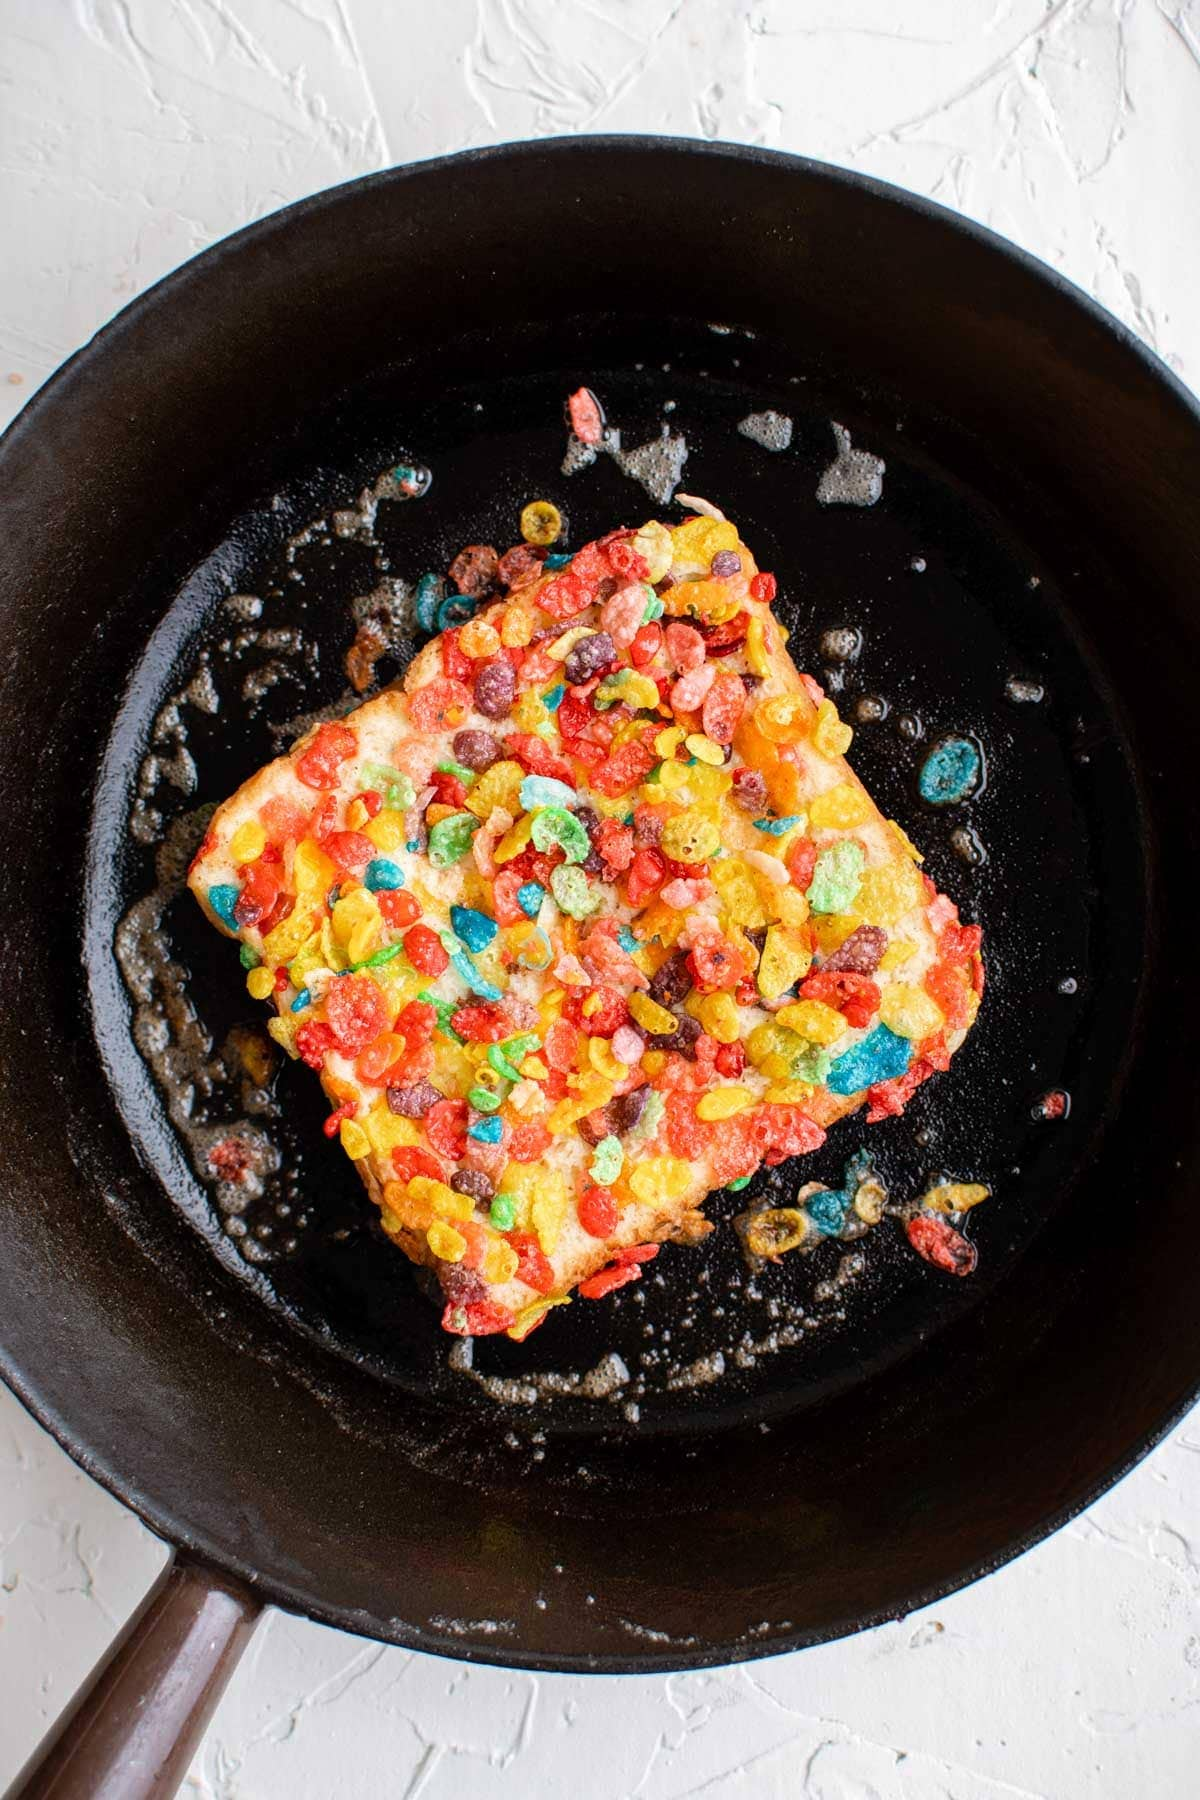 skillet, french toast with fruity pebbles cereal